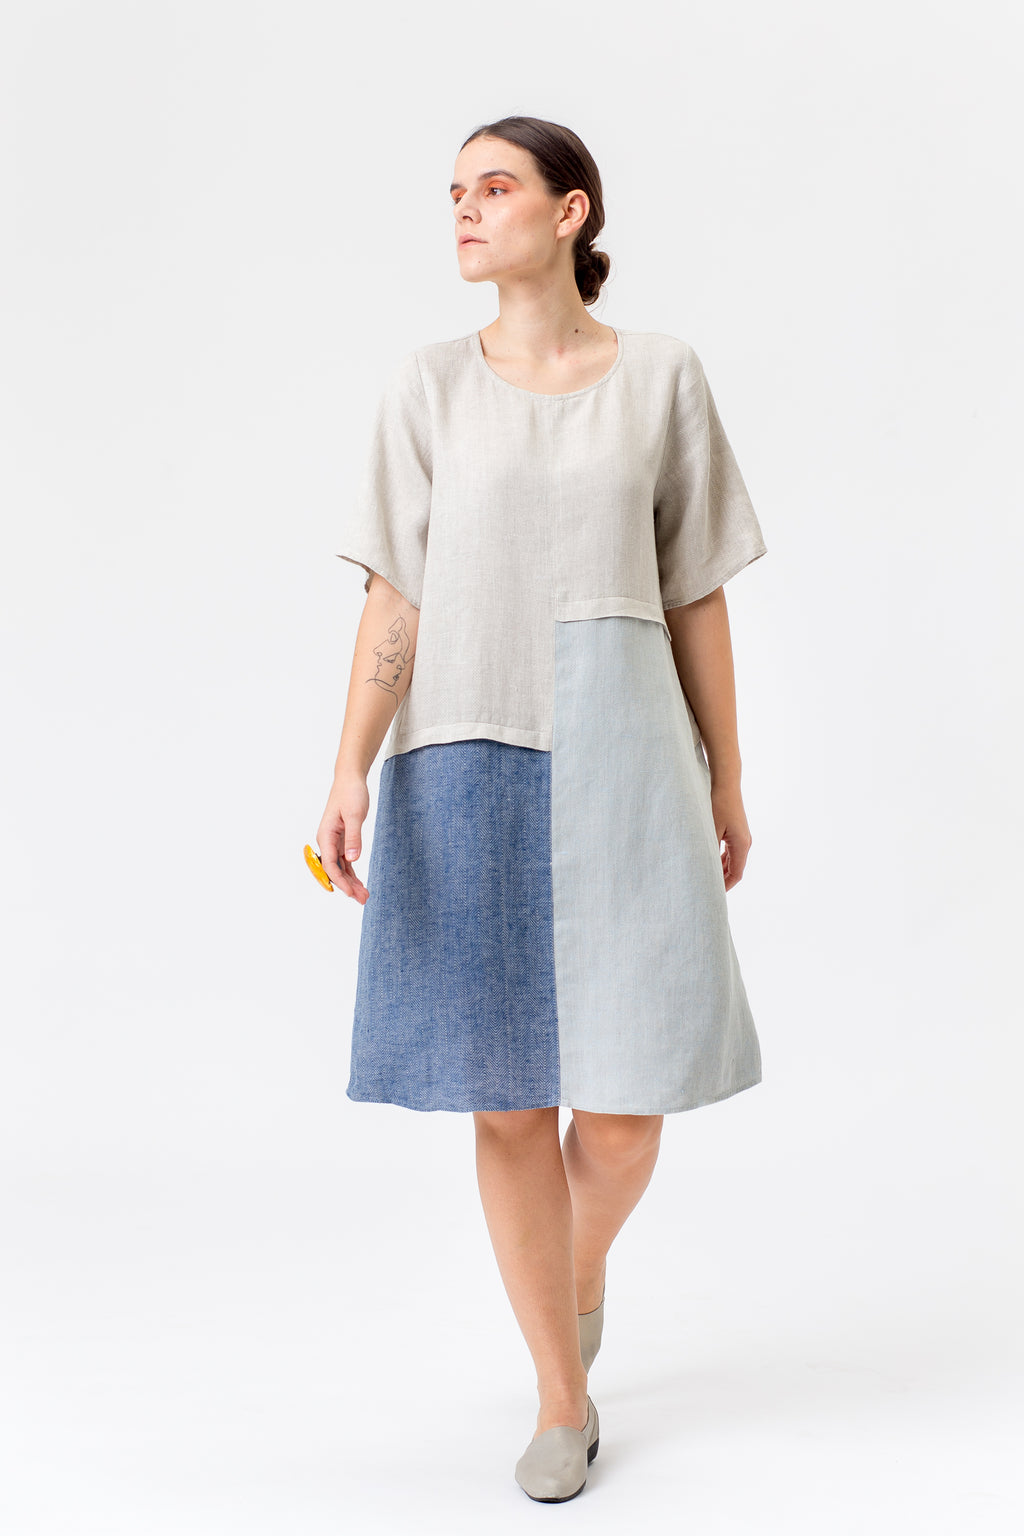 Linen Dress POLĖ blue/beige